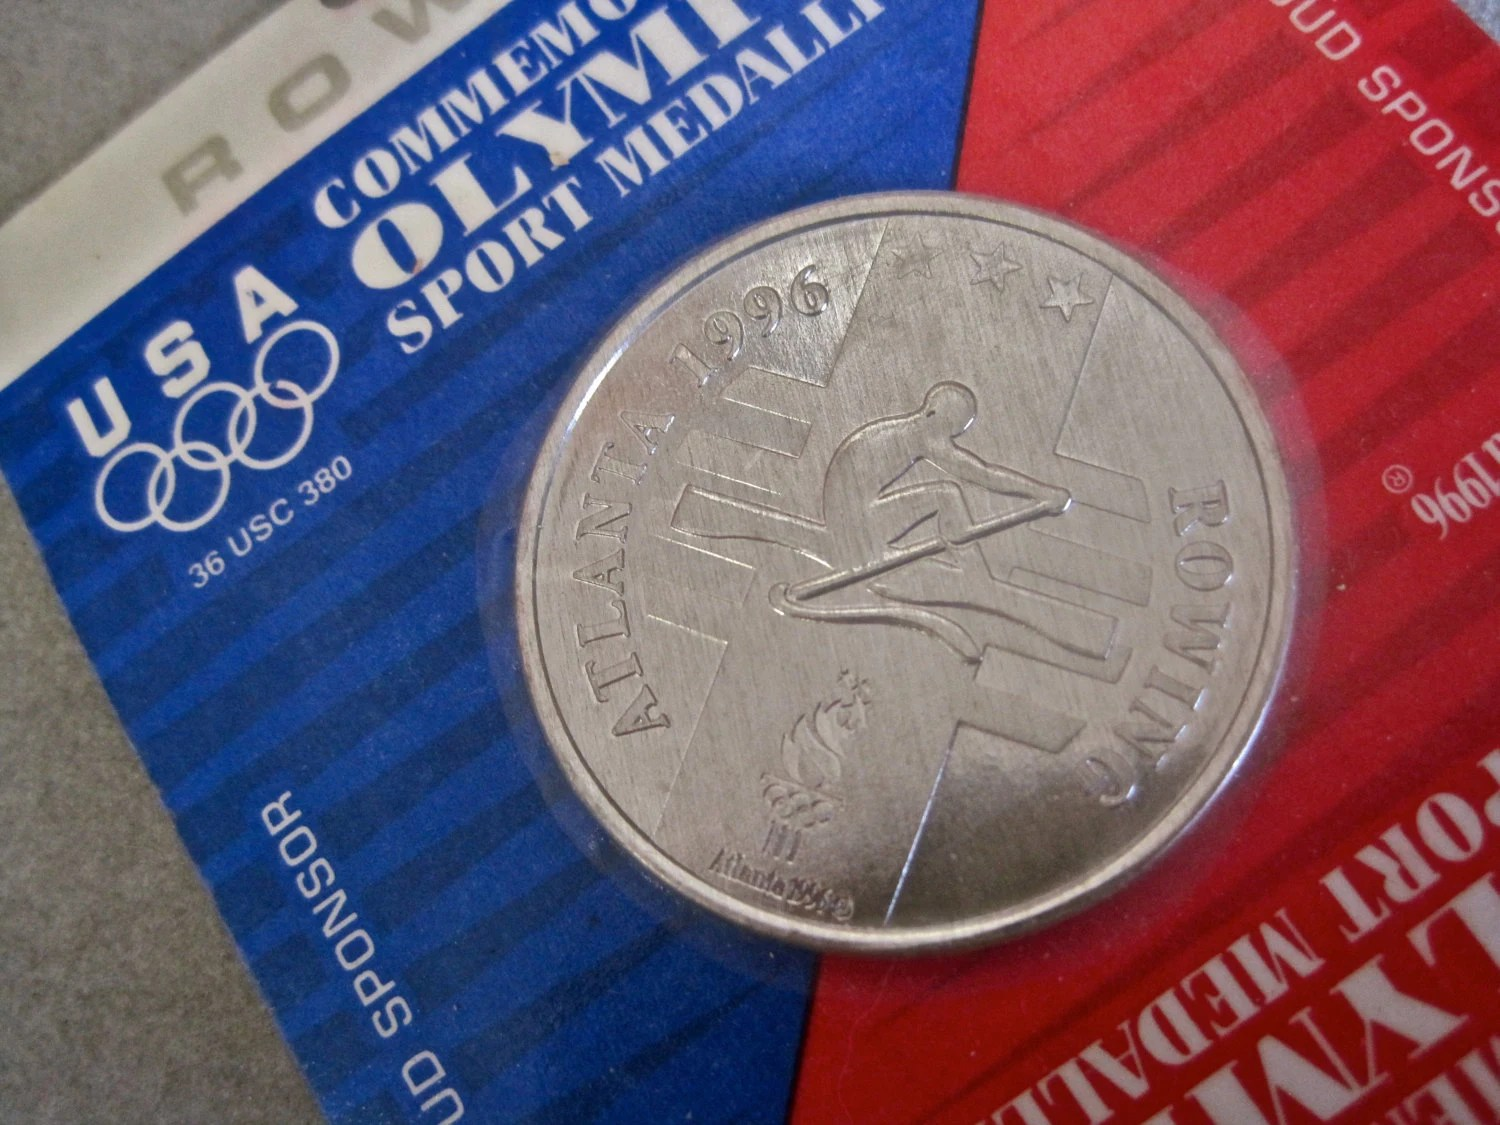 Olympics Rowing Medal Aluminum Coin General Mills